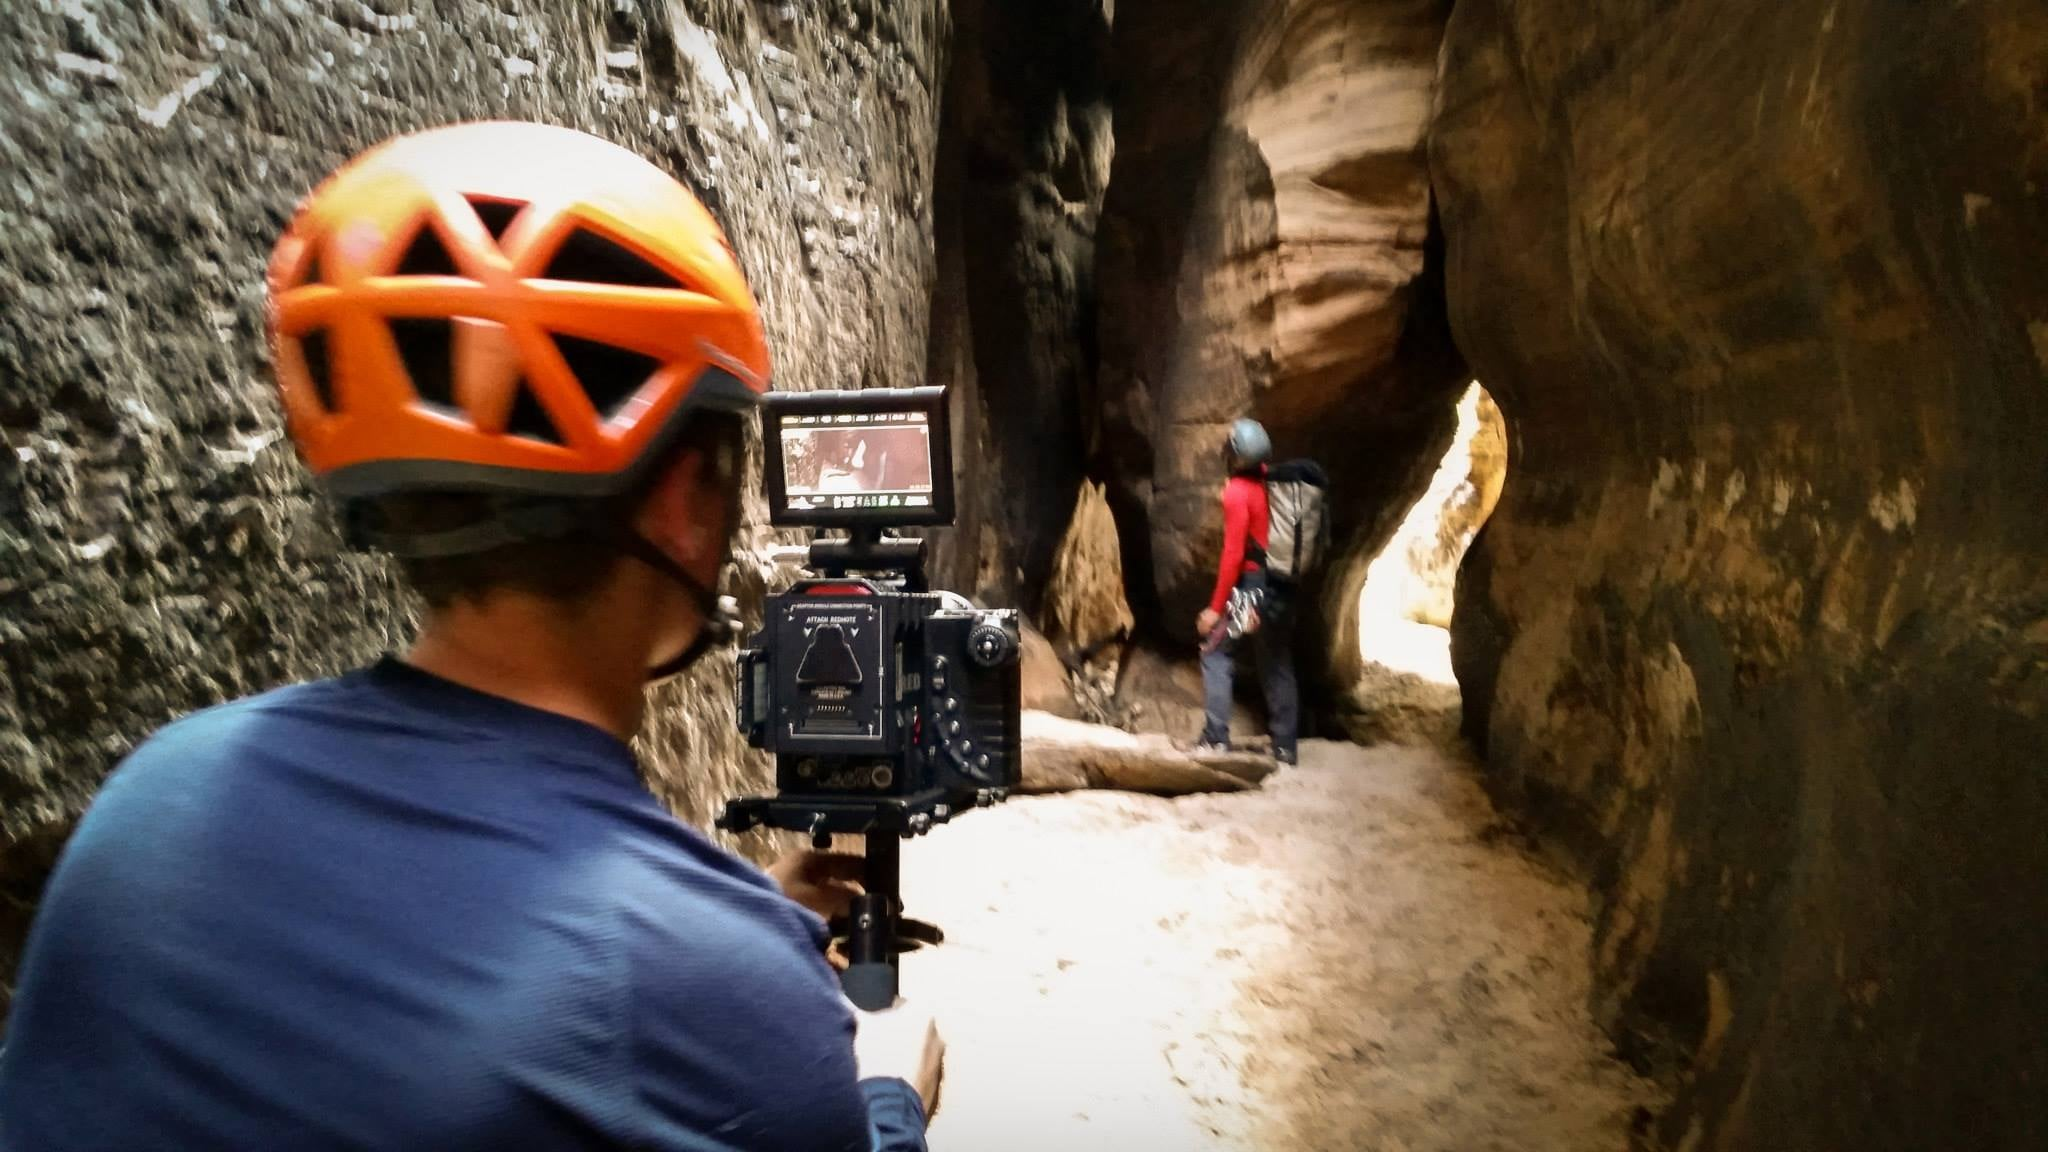 Filming in a beautiful slot canyon on southern Utah. Photo by Francisco Camberos.